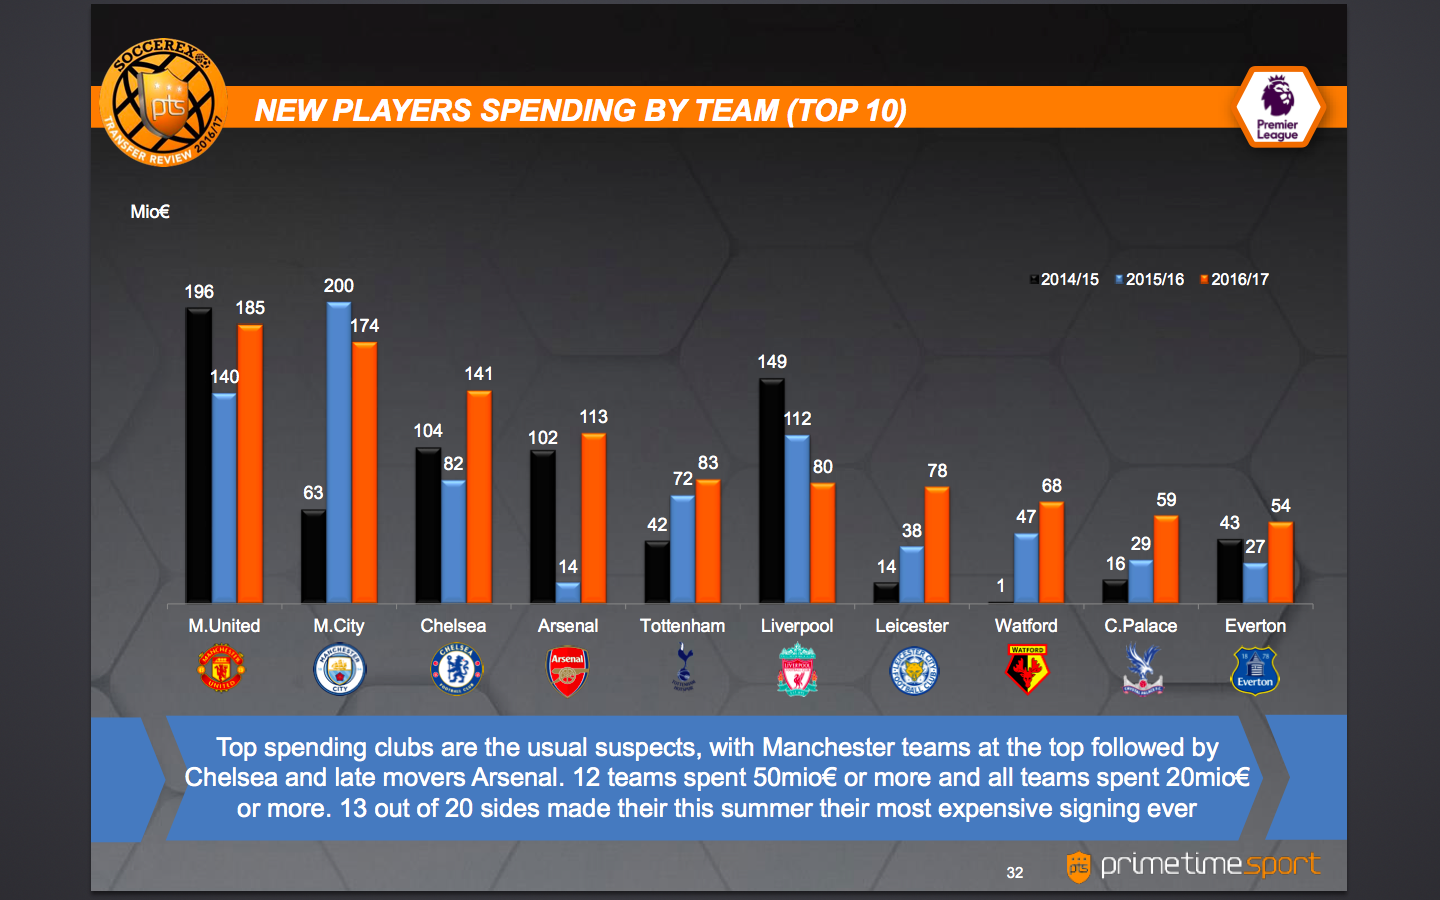 Top 10 new players spending by teams. Courtesy Soccerex Transfer Review/Primetime Sport